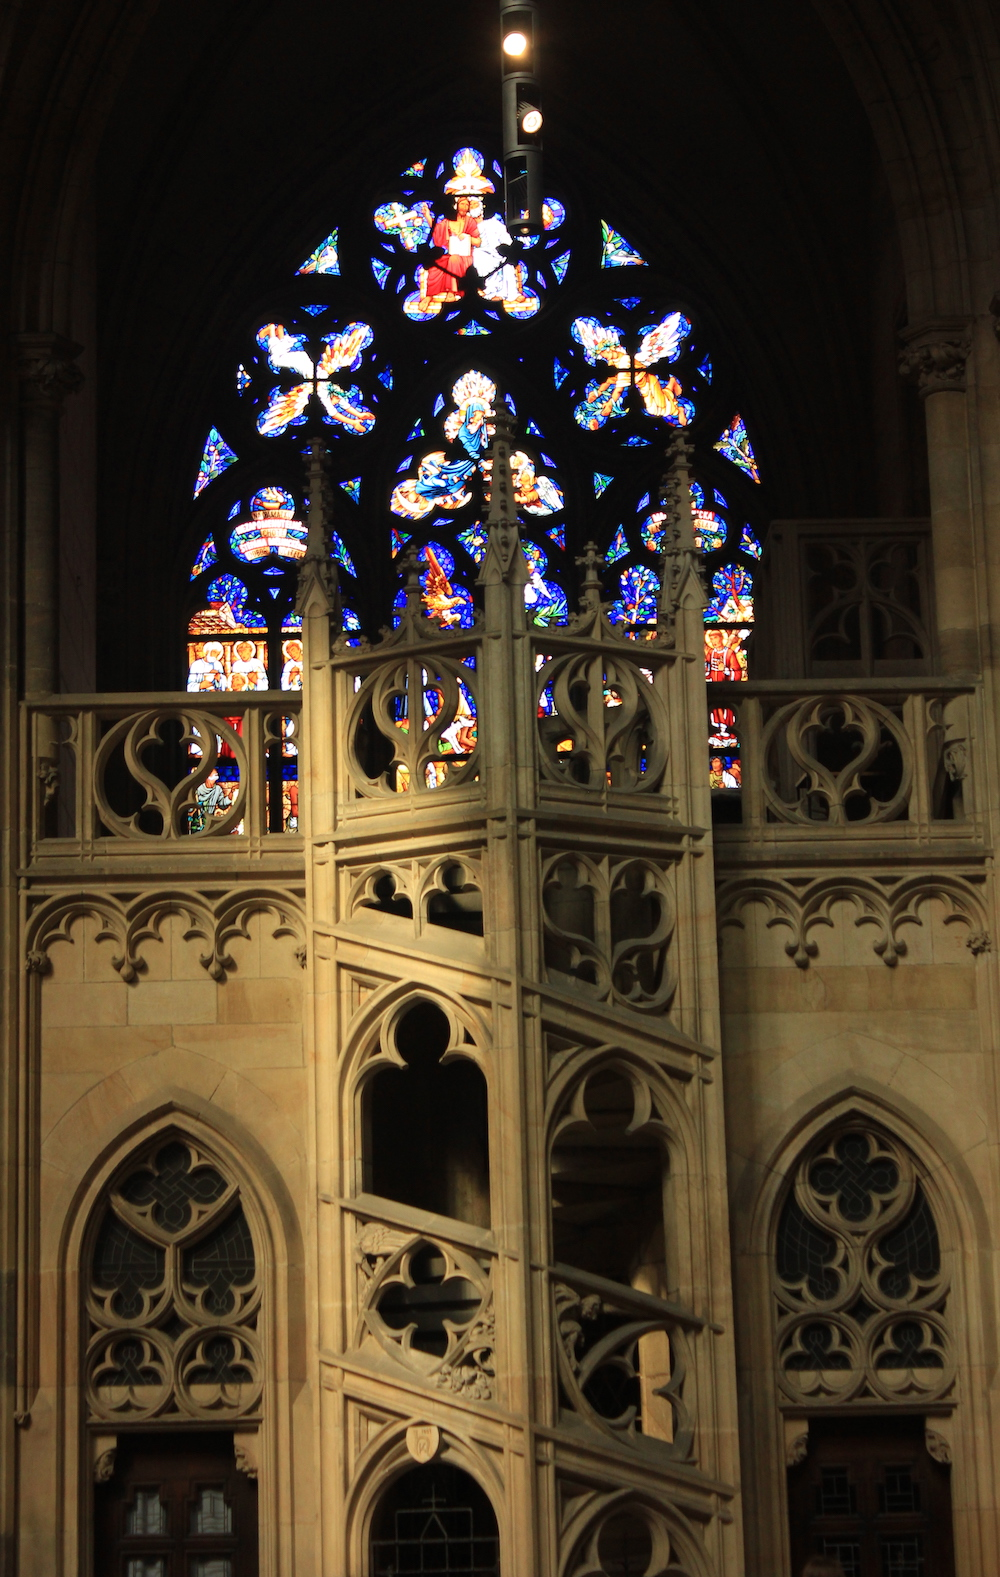 Stained glass window by Alfons Mucha in St. Vitus Cathedral | Photo credit: Rose Spaziani